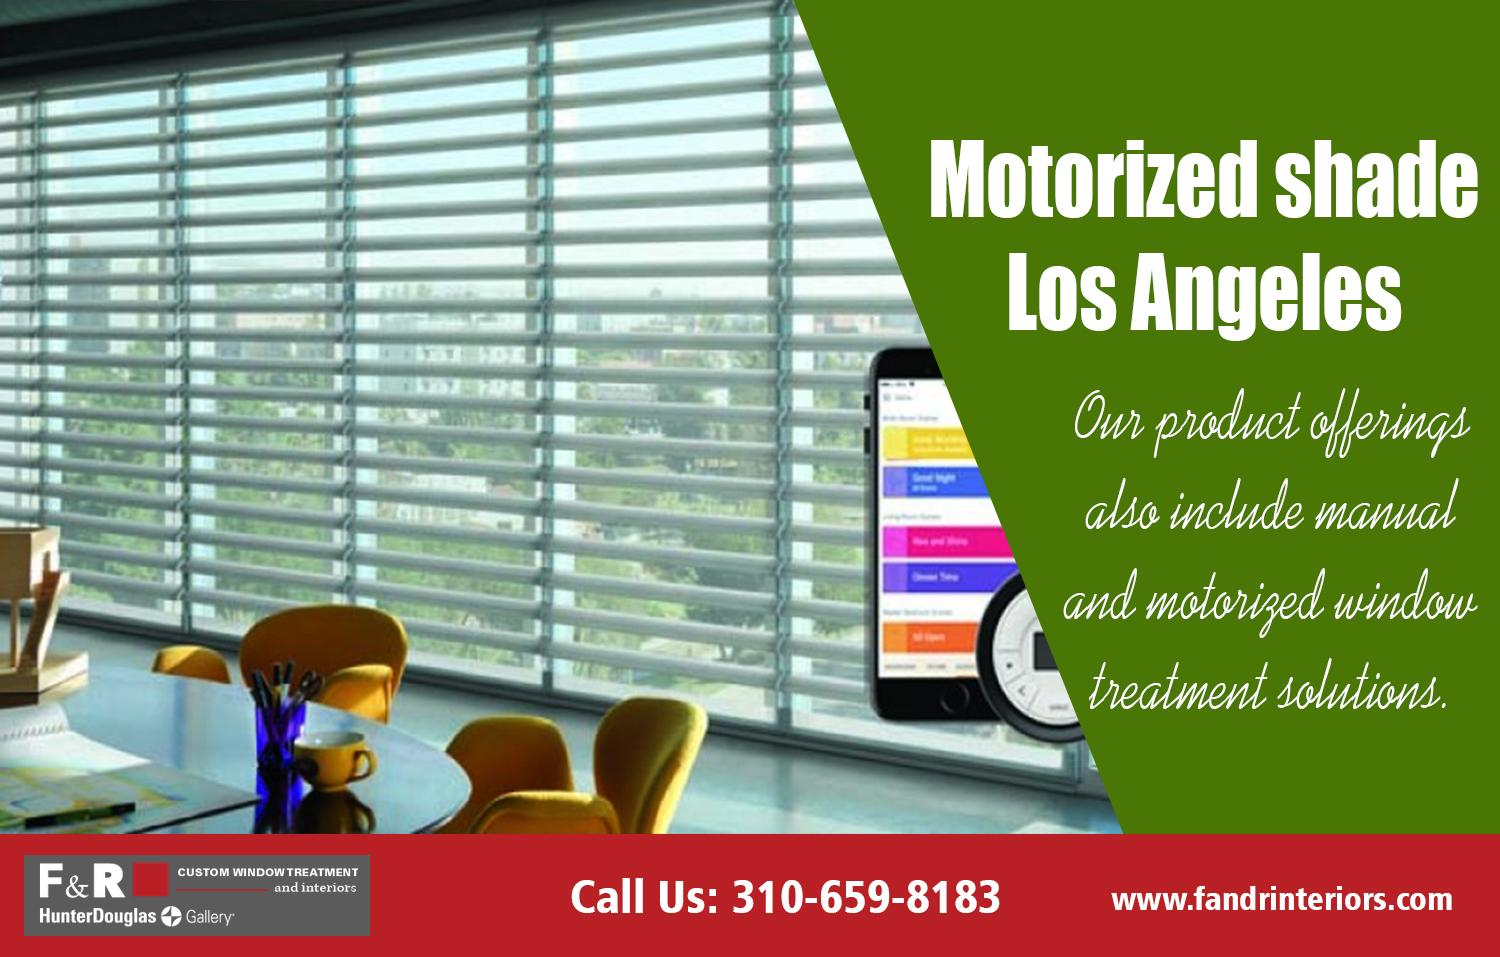 Motorized shade Los Angeles| http://fandrinteriors.com/